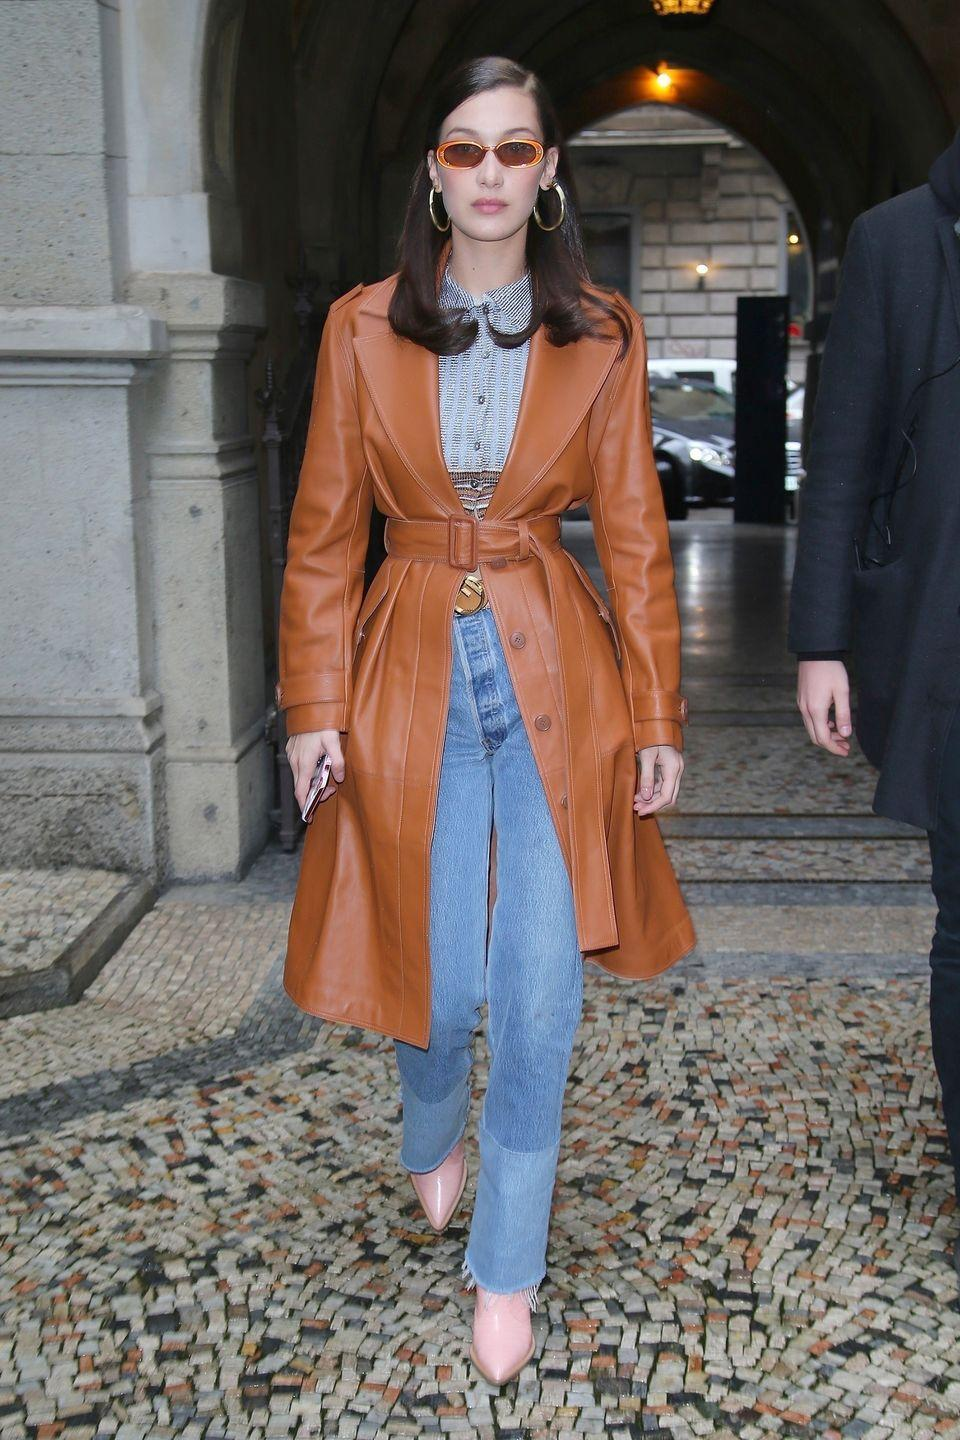 <p>In a burnt orange patent leather belted jacket cinched at the waist, layered over a blue collared shirt tucked into high-waisted boot-cut frayed jeans, finished with pointed-toe rose-colored boots, gold hoop earrings, and orange sunglasses while on the streets of Milan.</p>